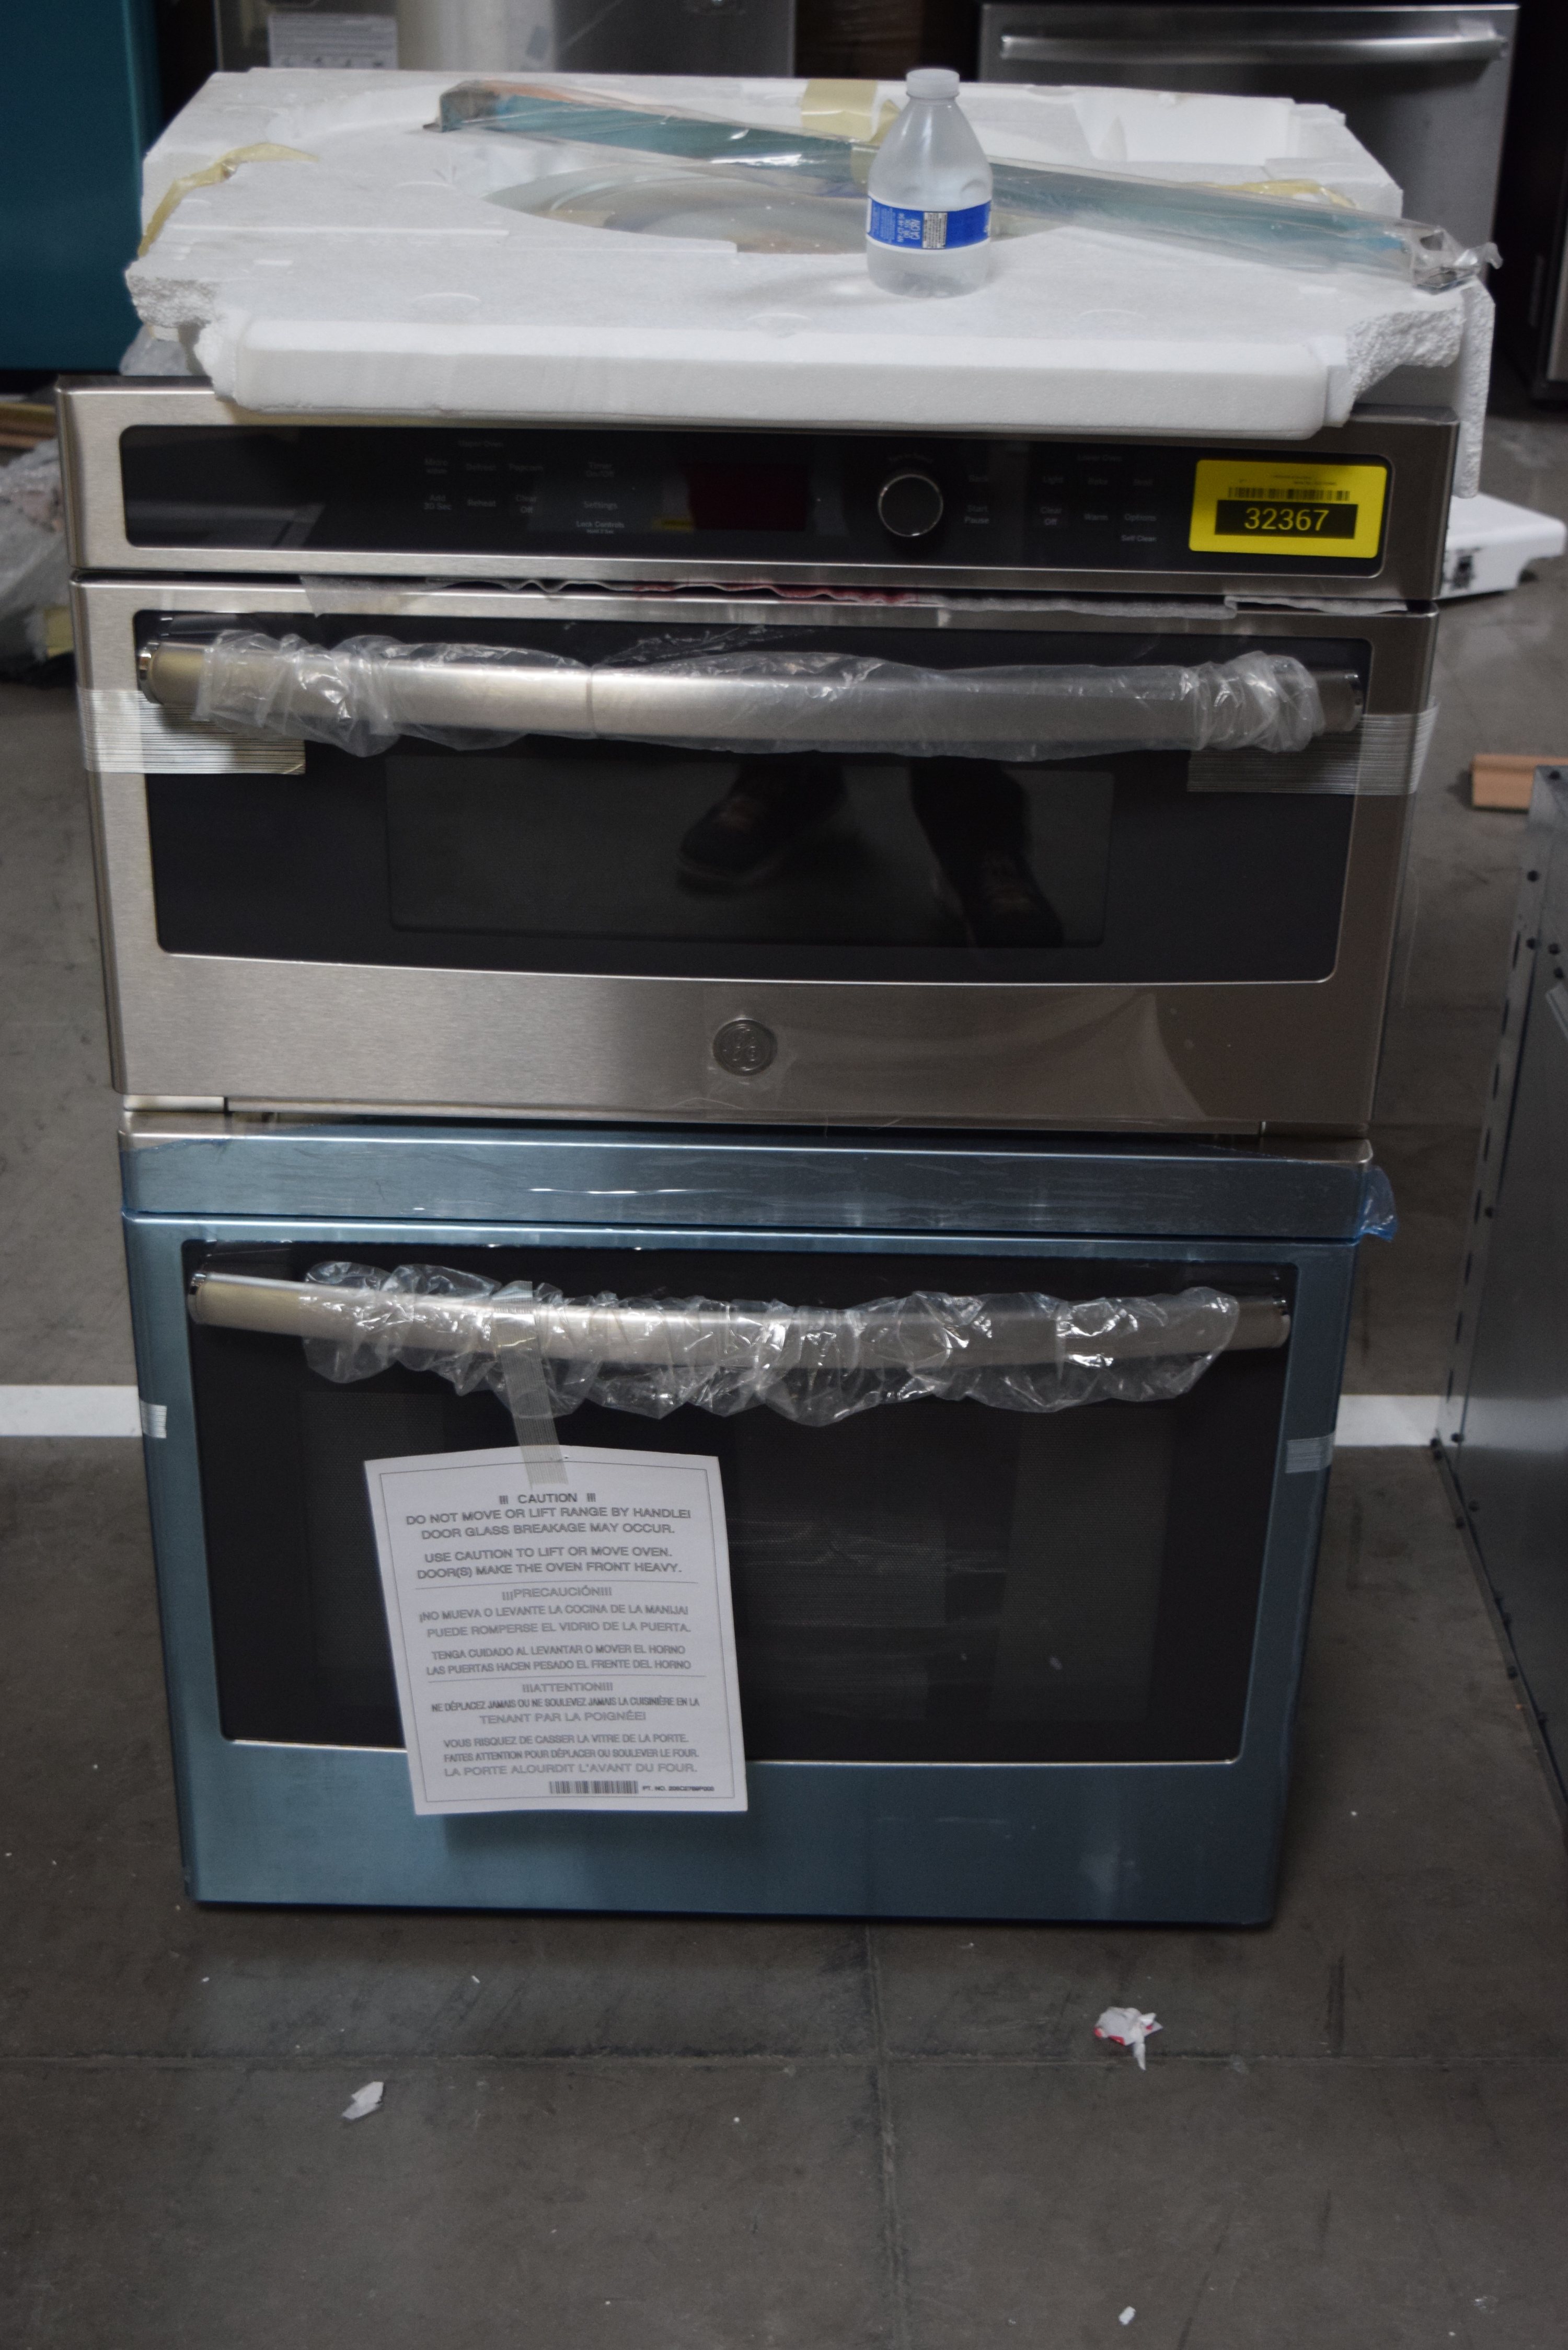 GE JT3800SHSS Microwave-Oven Combo Wall Oven Stainless #32367